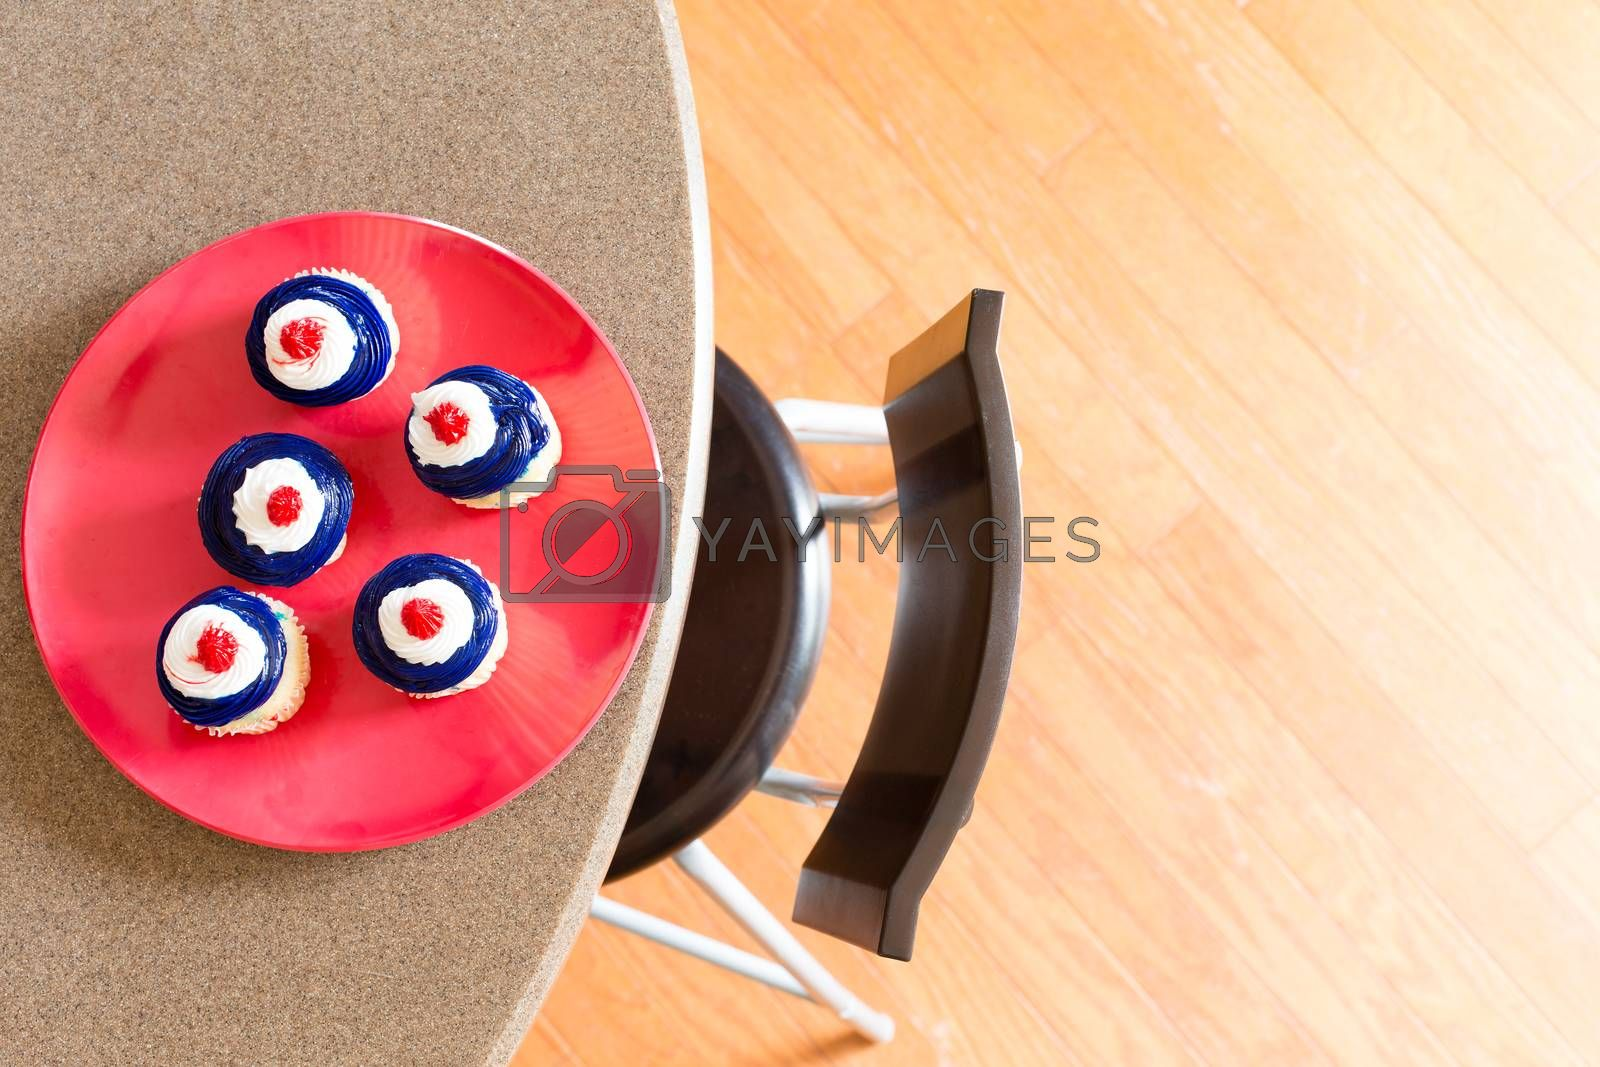 Patriotic 4th July Independence Day cupcakes with red, white and blue icing served on a red plate on a table, overhead view with copyspace on a wooden parquet floor